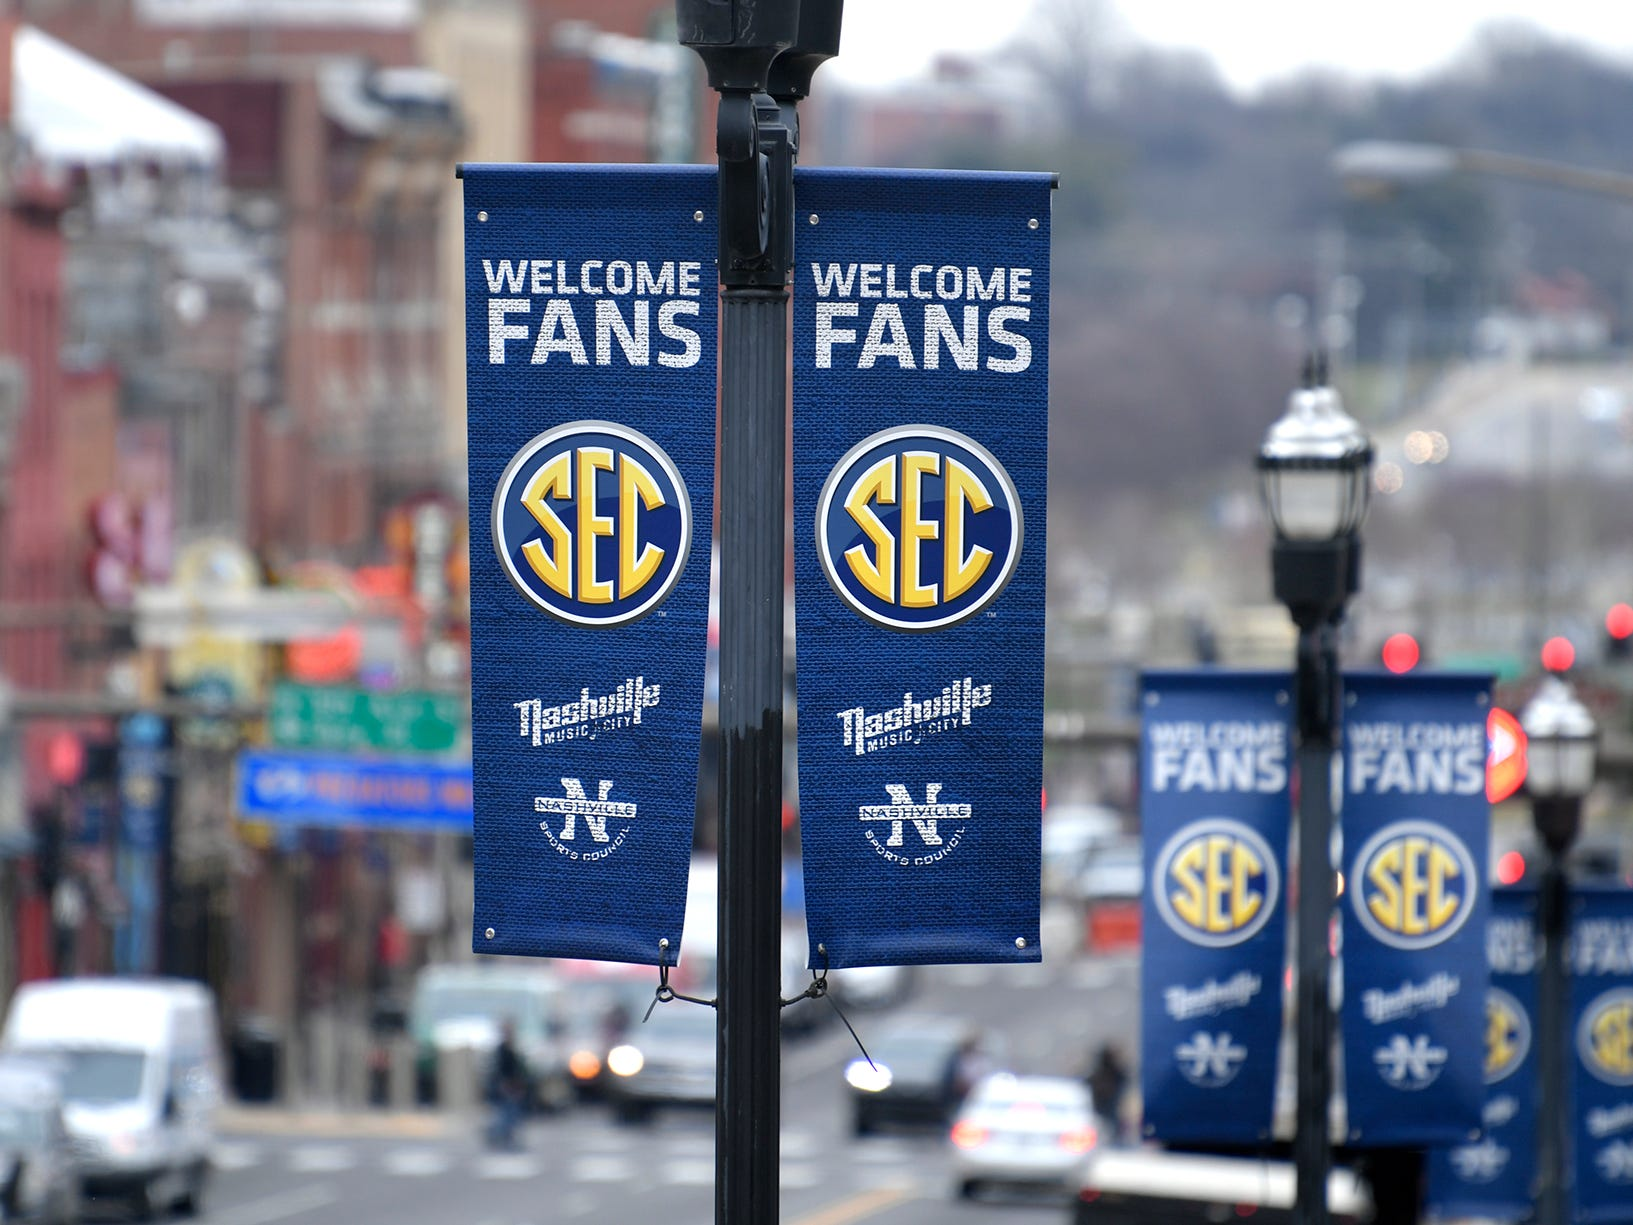 SEC Men's Basketball Tournament banners hand in downtown Nashville on Wednesday, March 13, 2019.